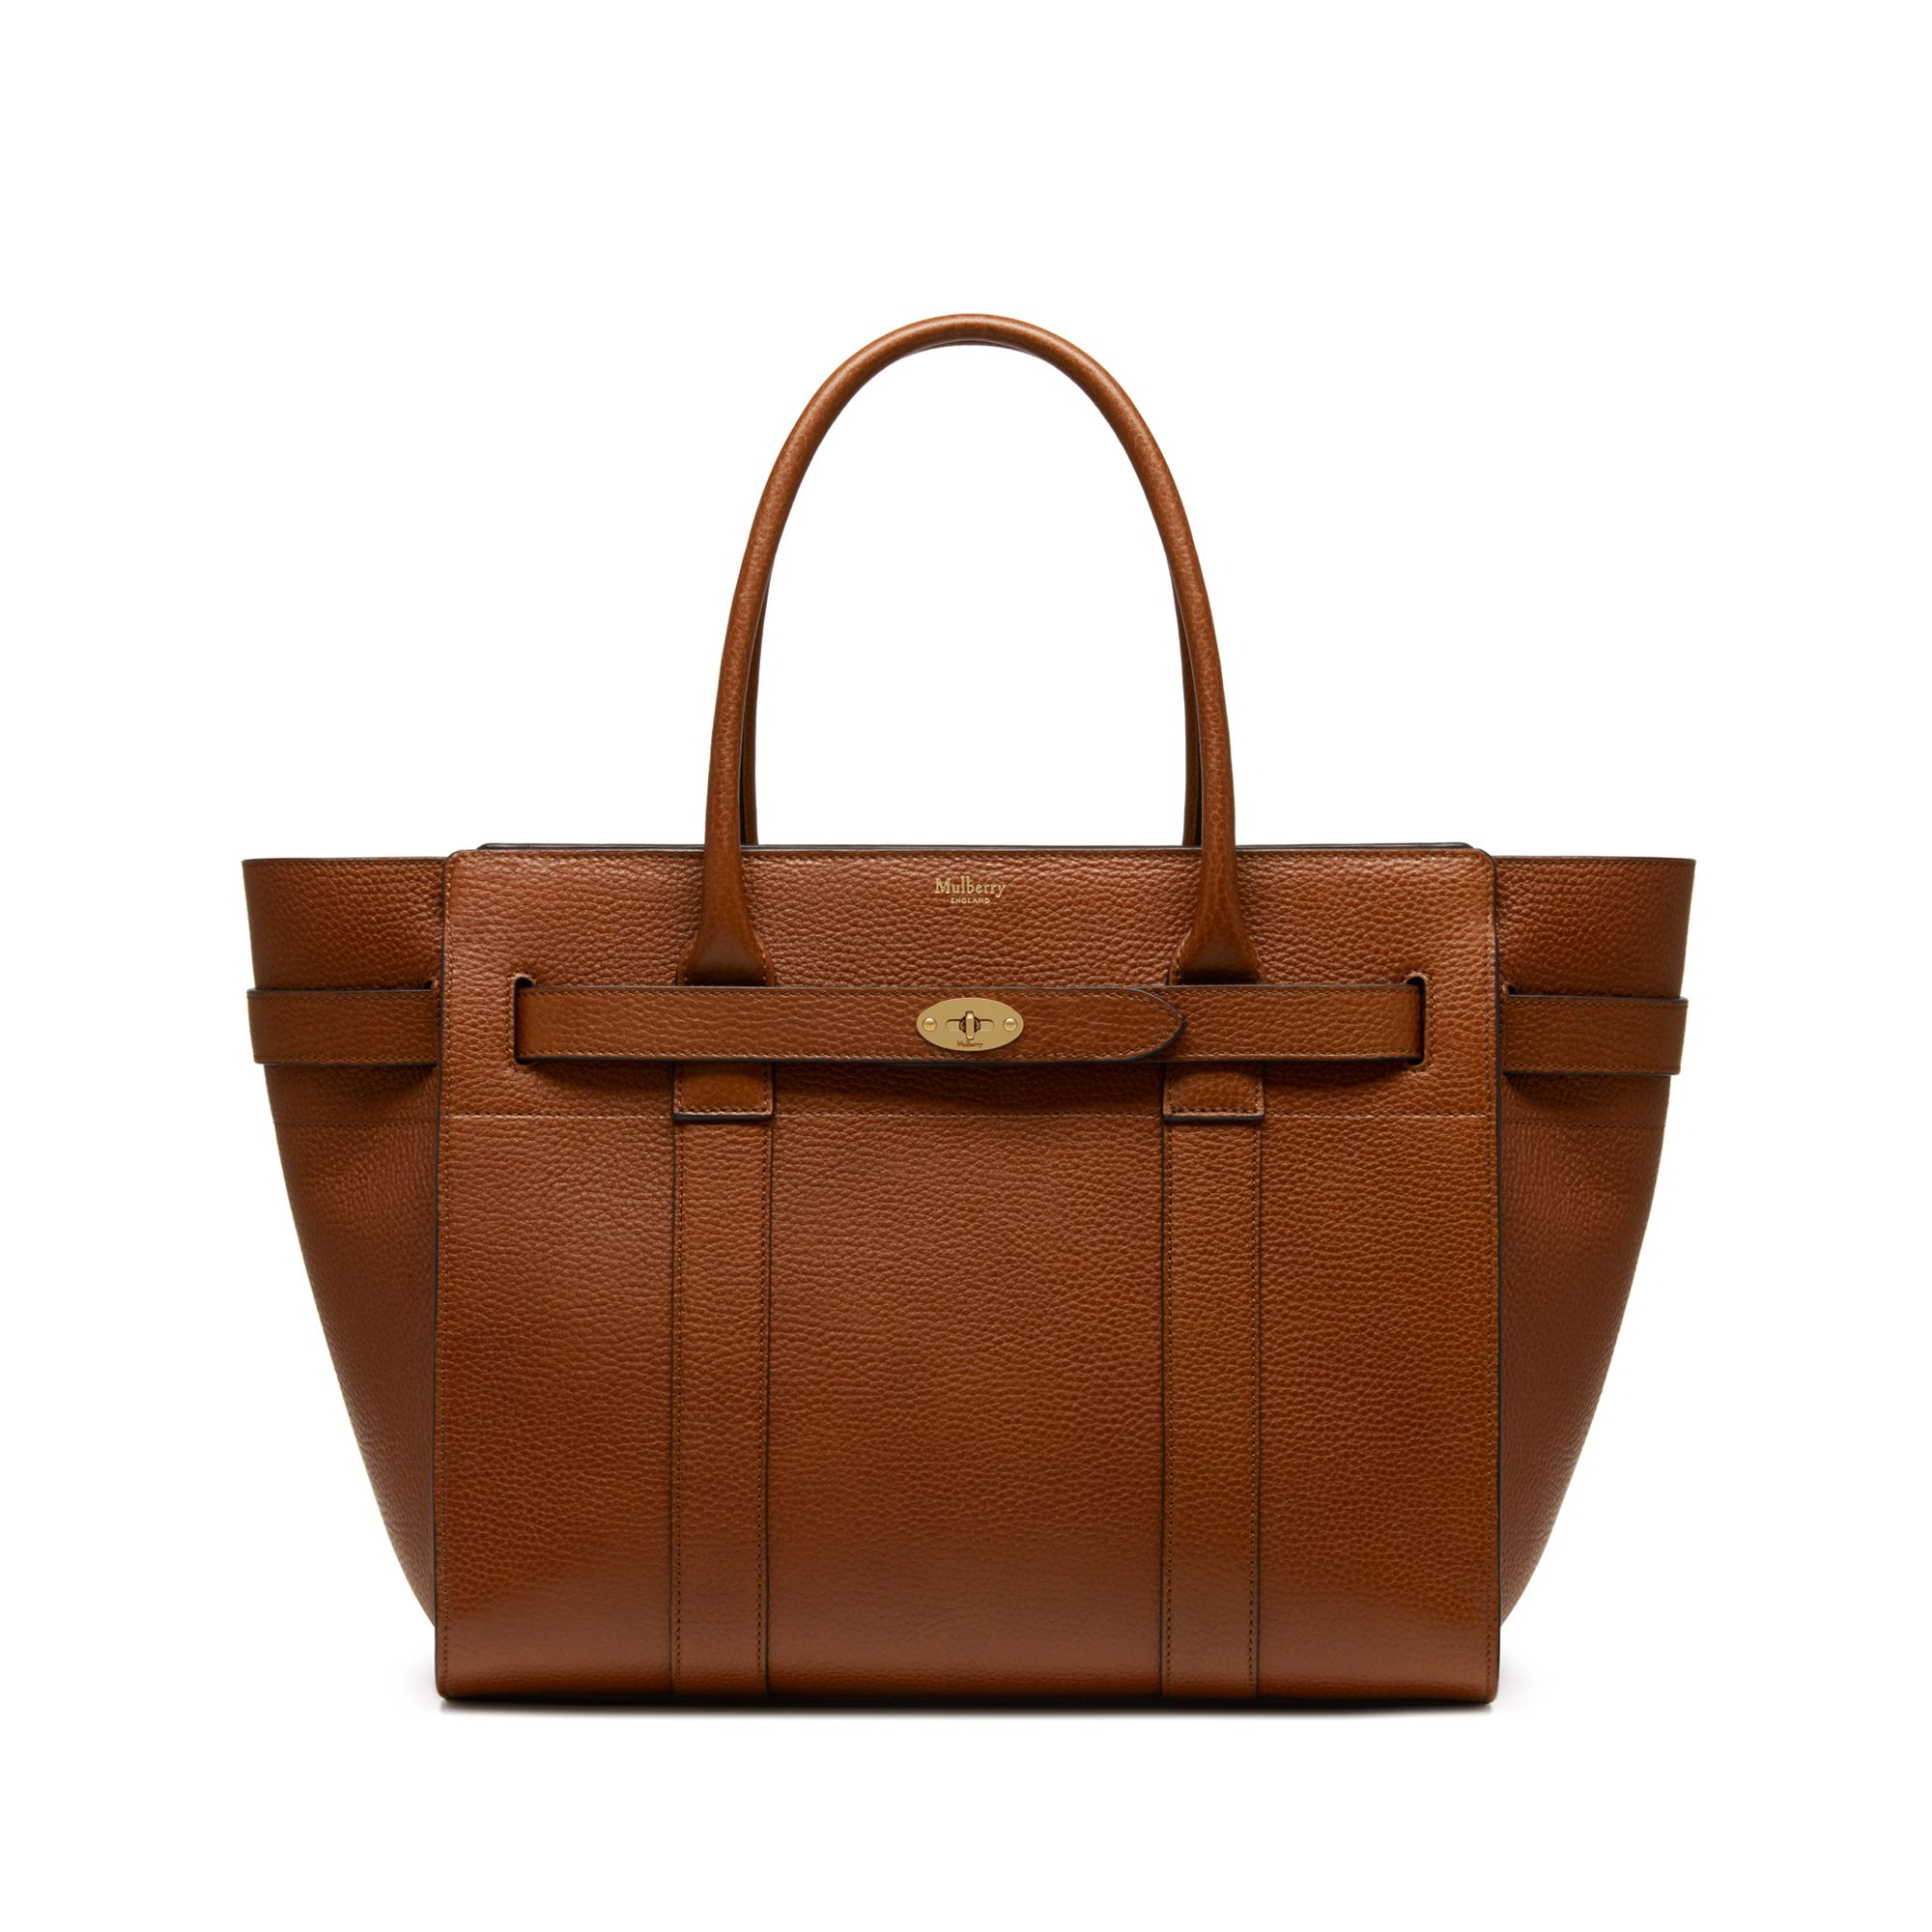 promo code mulberry bag discount rates 1a5c1 9eb2d